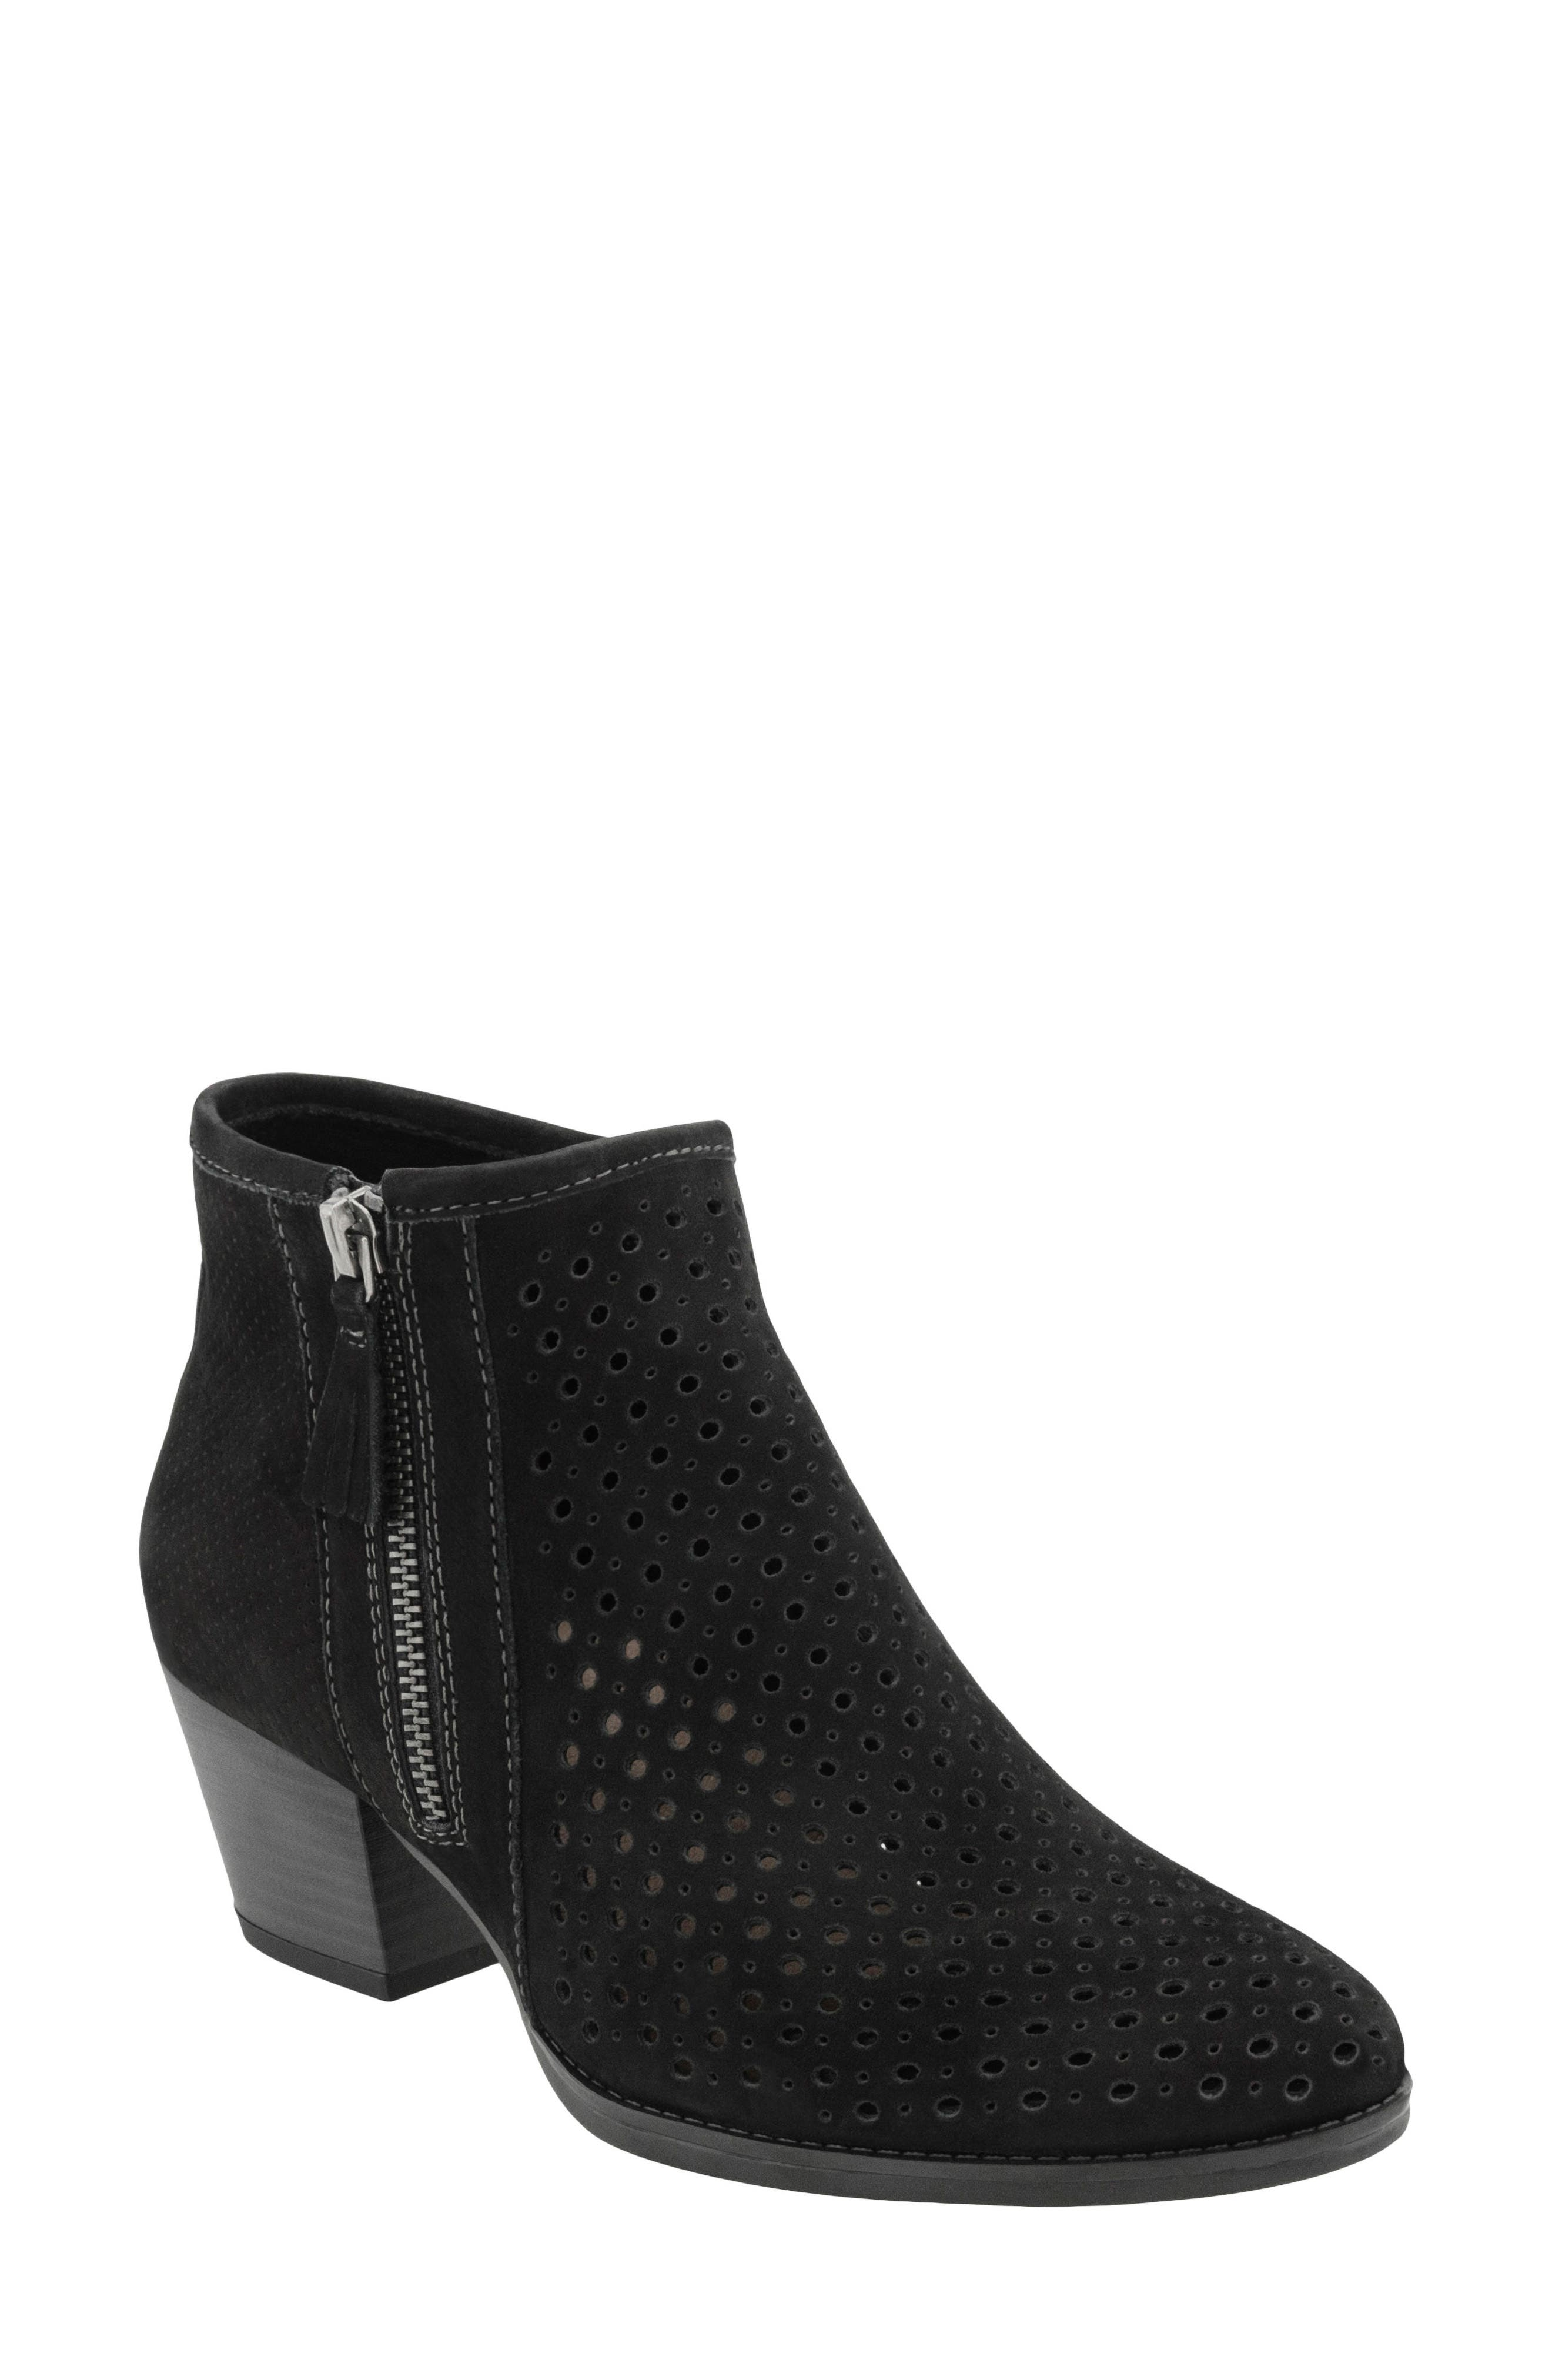 Pineberry Bootie,                             Main thumbnail 1, color,